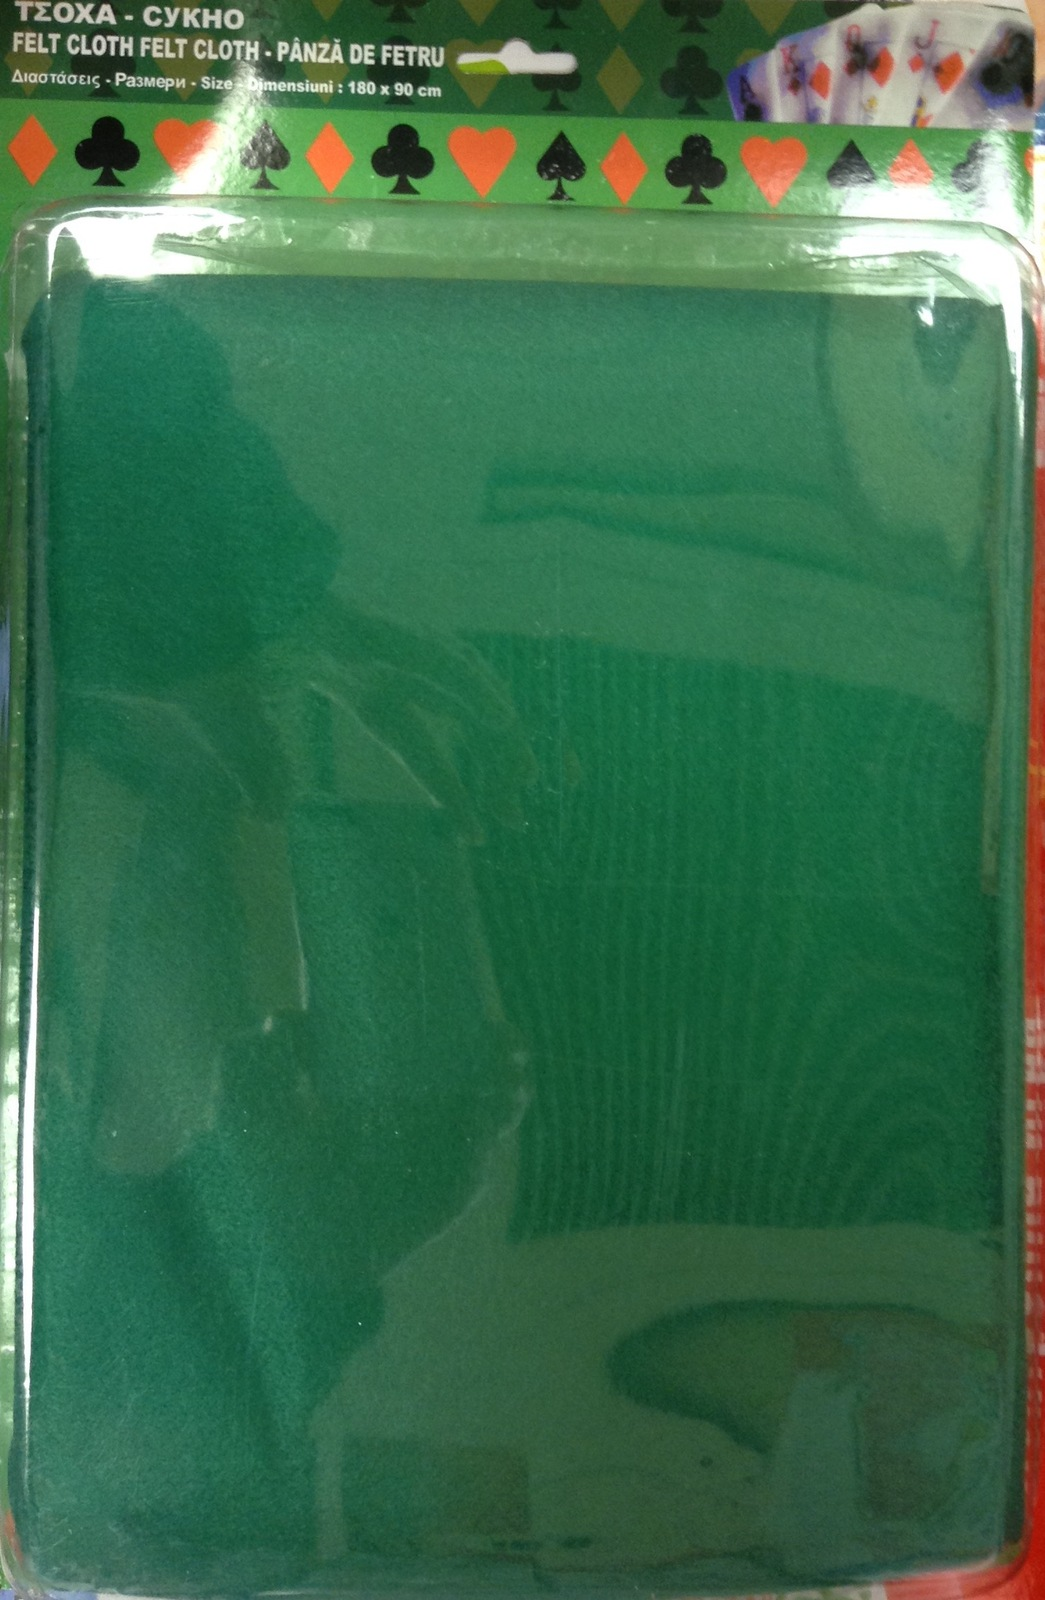 Green poker felt table cloth 180x90cm playing cards new tablecloths